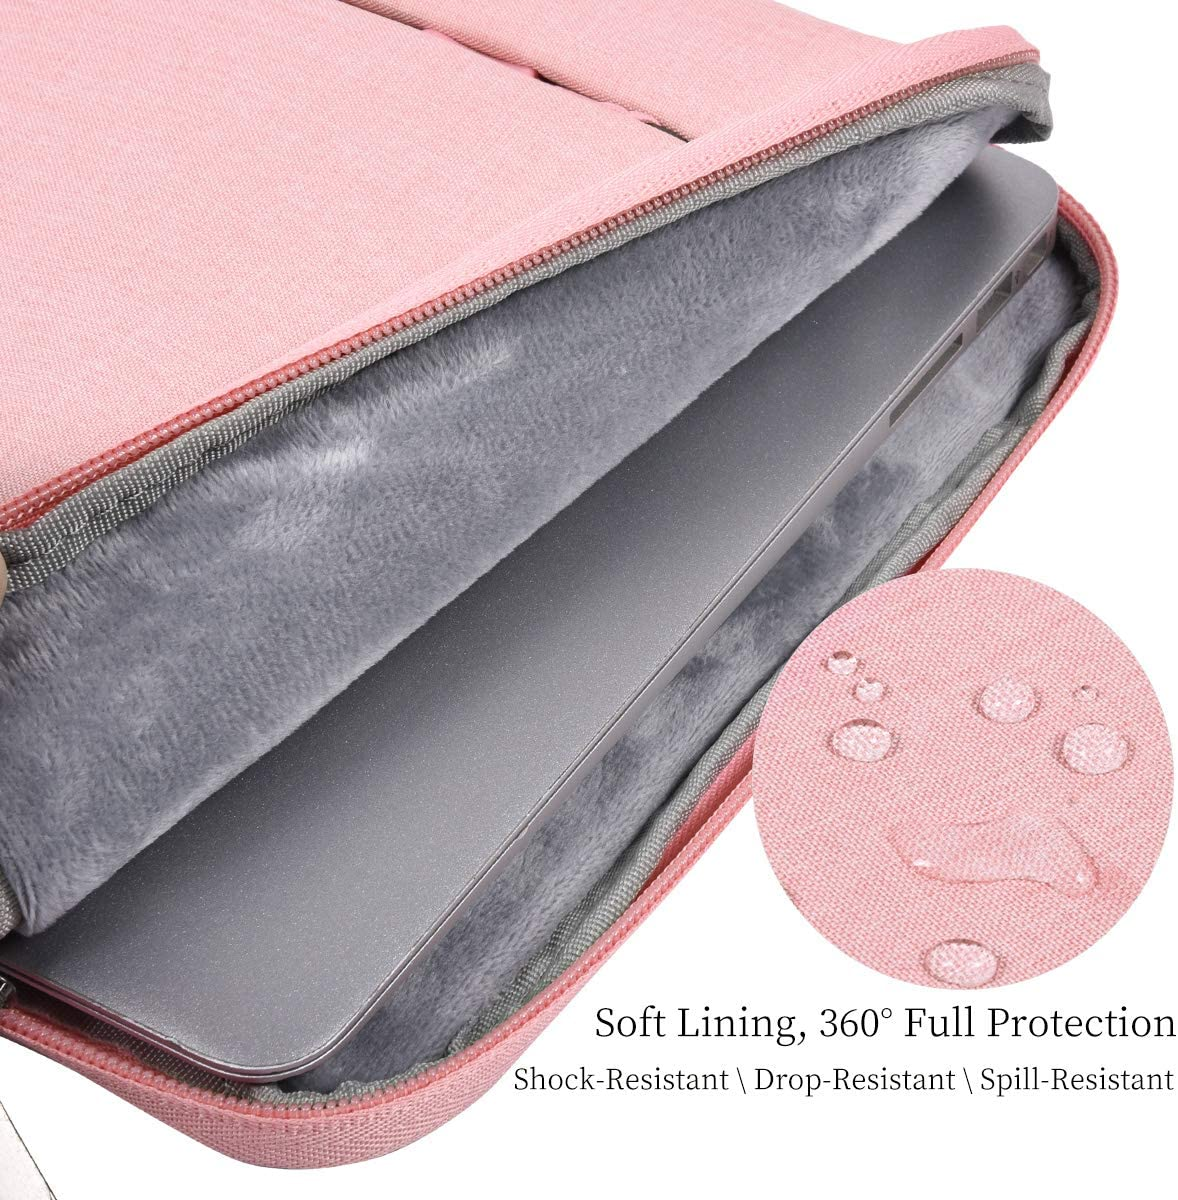 MacBook Air 13 A1932 Waterproof Men Women Laptop Briefcase Organizer for Dell XPS 13 9380 Lenovo Chromebook C330 Gray 11.6 13 Inch Laptop Sleeve Bag Dell Surface ASUS HP Chromebook Carrying Case